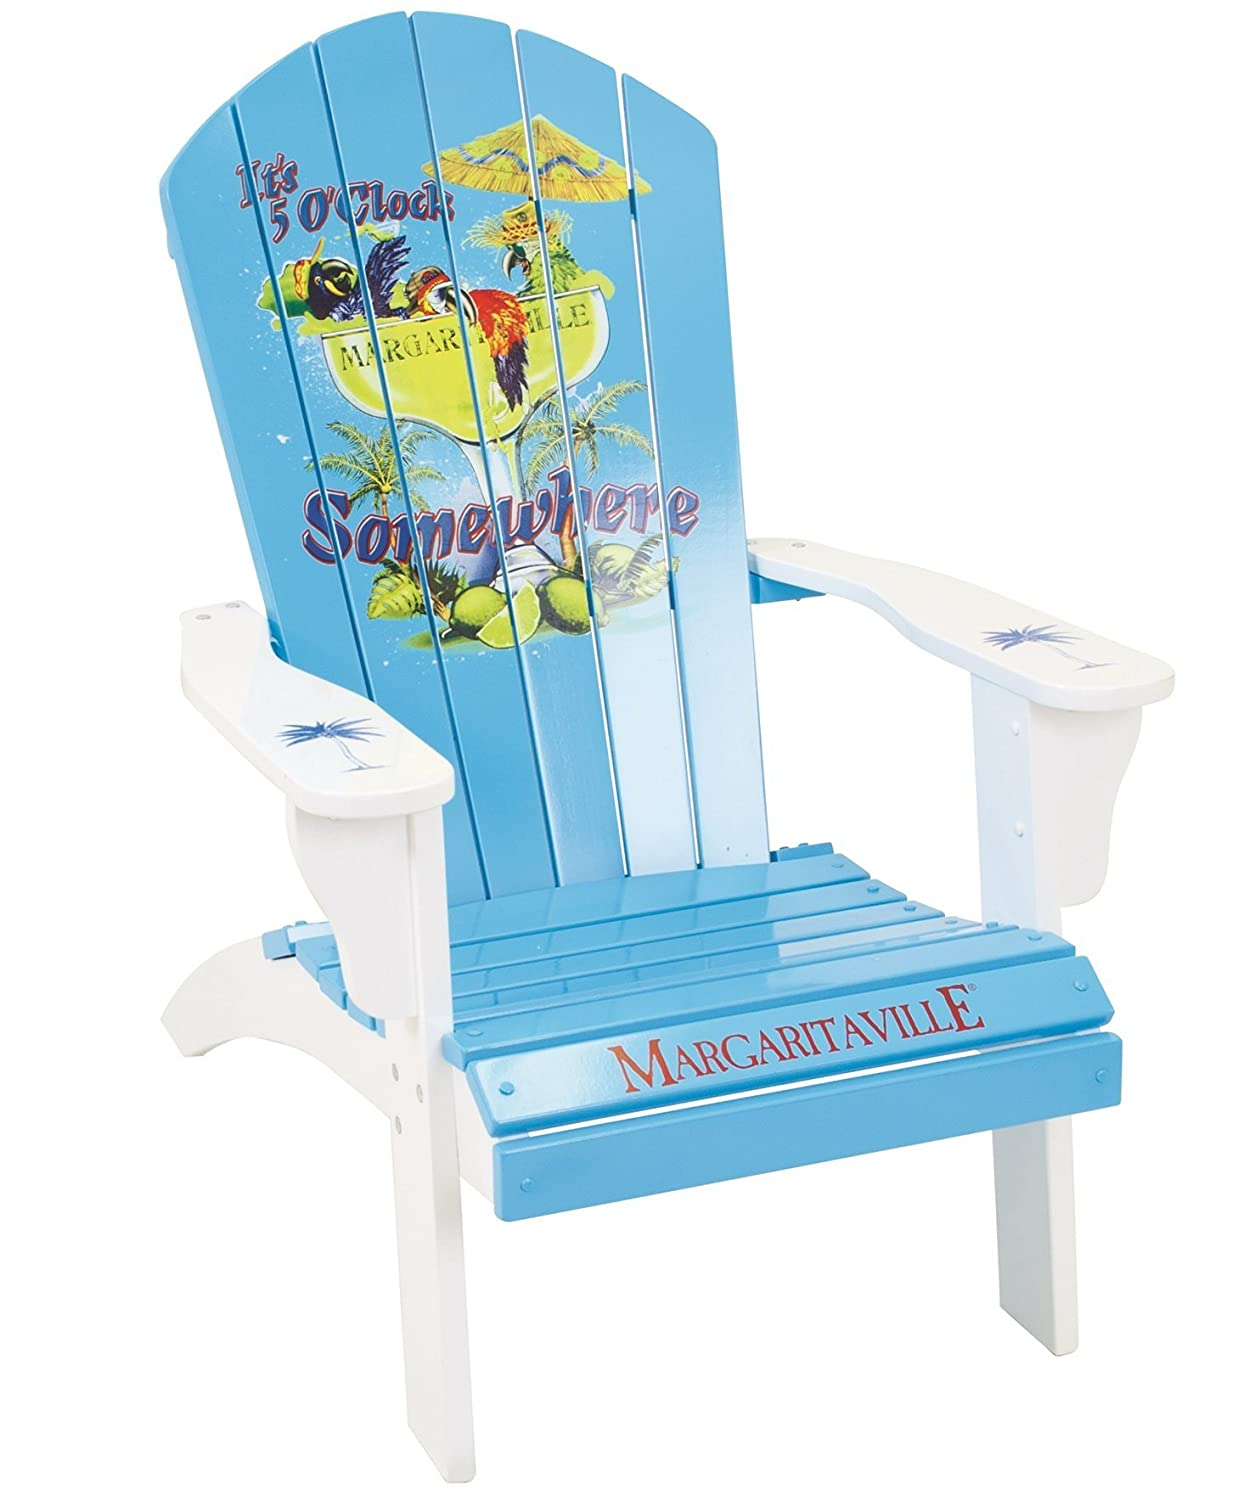 Amazon.com : Margaritaville Outdoor Adirondack Chair, Itu0027s 5 Ou0027clock  Somewhere, Light Blue : Patio, Lawn U0026 Garden